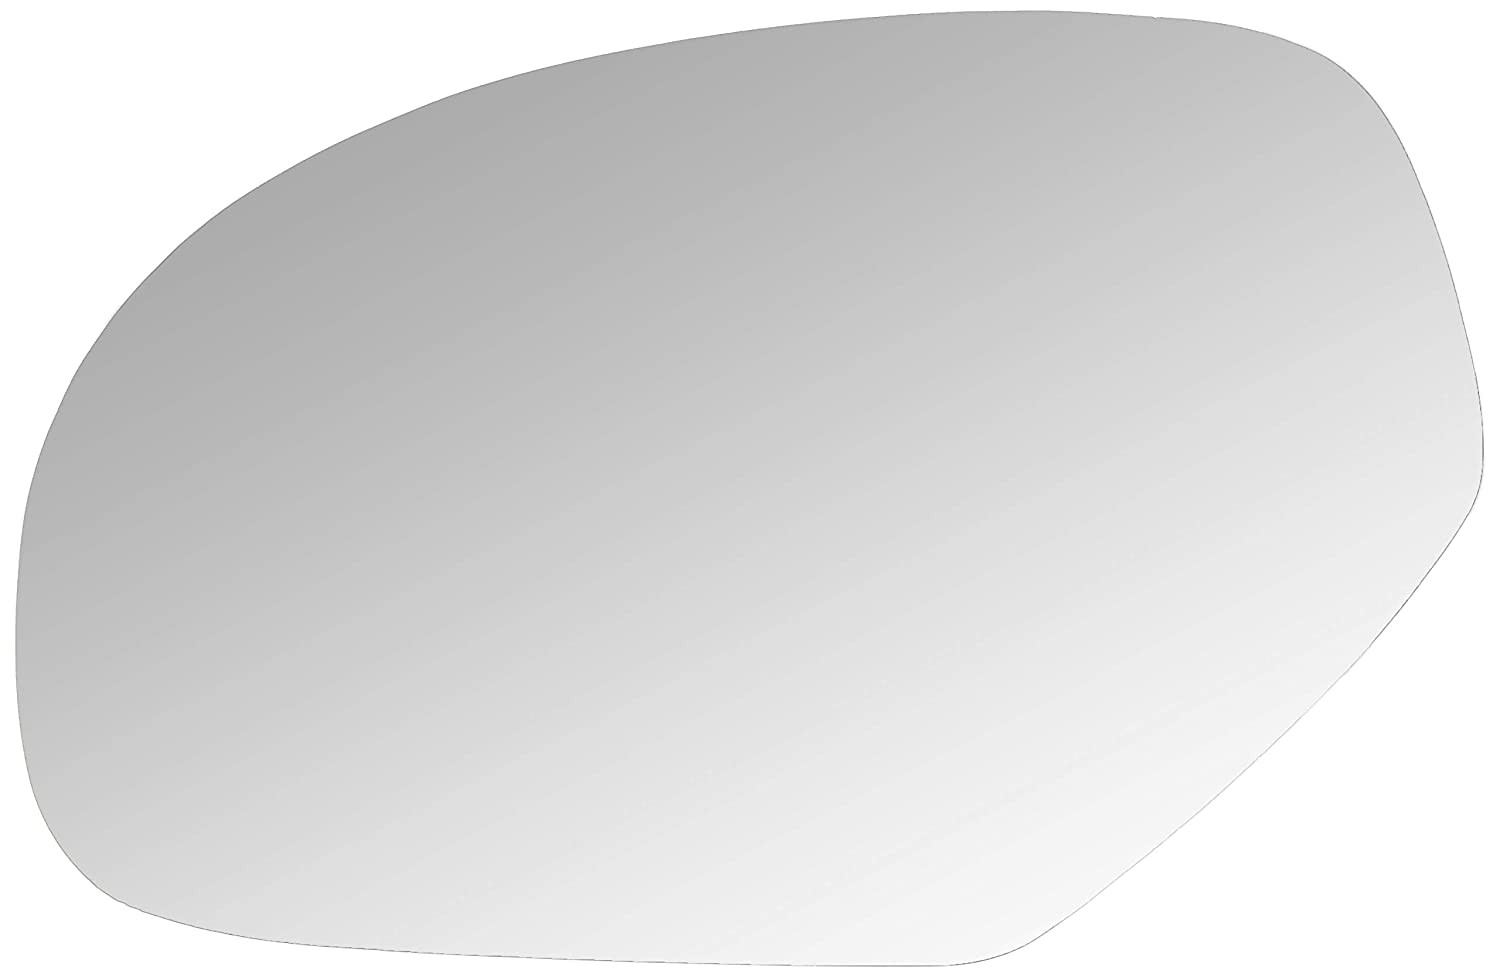 Burco 5211 Passenger Side Replacement Mirror Glass for Cadillac Escalade Silverado Tahoe Chevy Avalanche 2007 2008 2009 2010 2011 2012 2013 2014 Suburban GMC Sierra